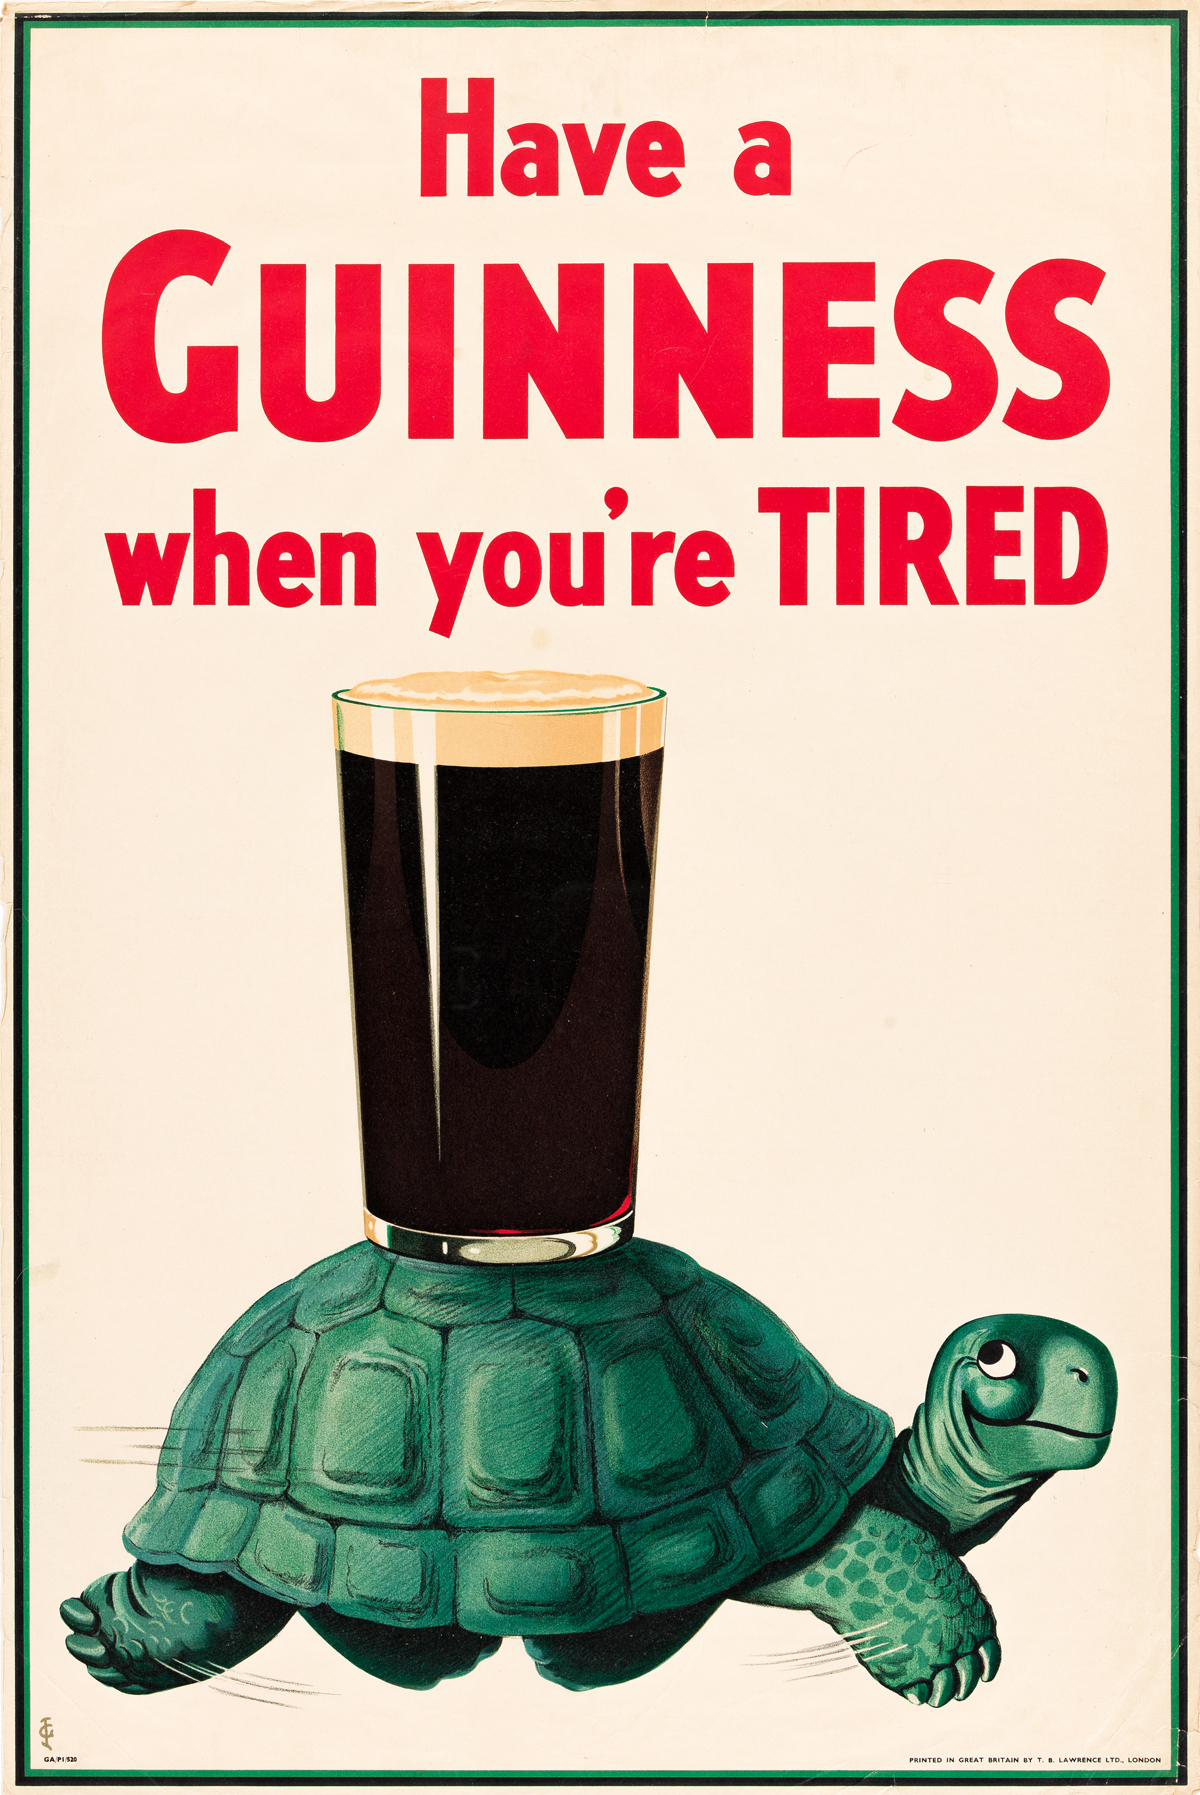 JOHN GILROY (1898-1985).  HAVE A GUINNESS WHEN YOURE TIRED. 1936. 30x20 inches, 76x50 cm. T.B. Lawrence Ltd., London.